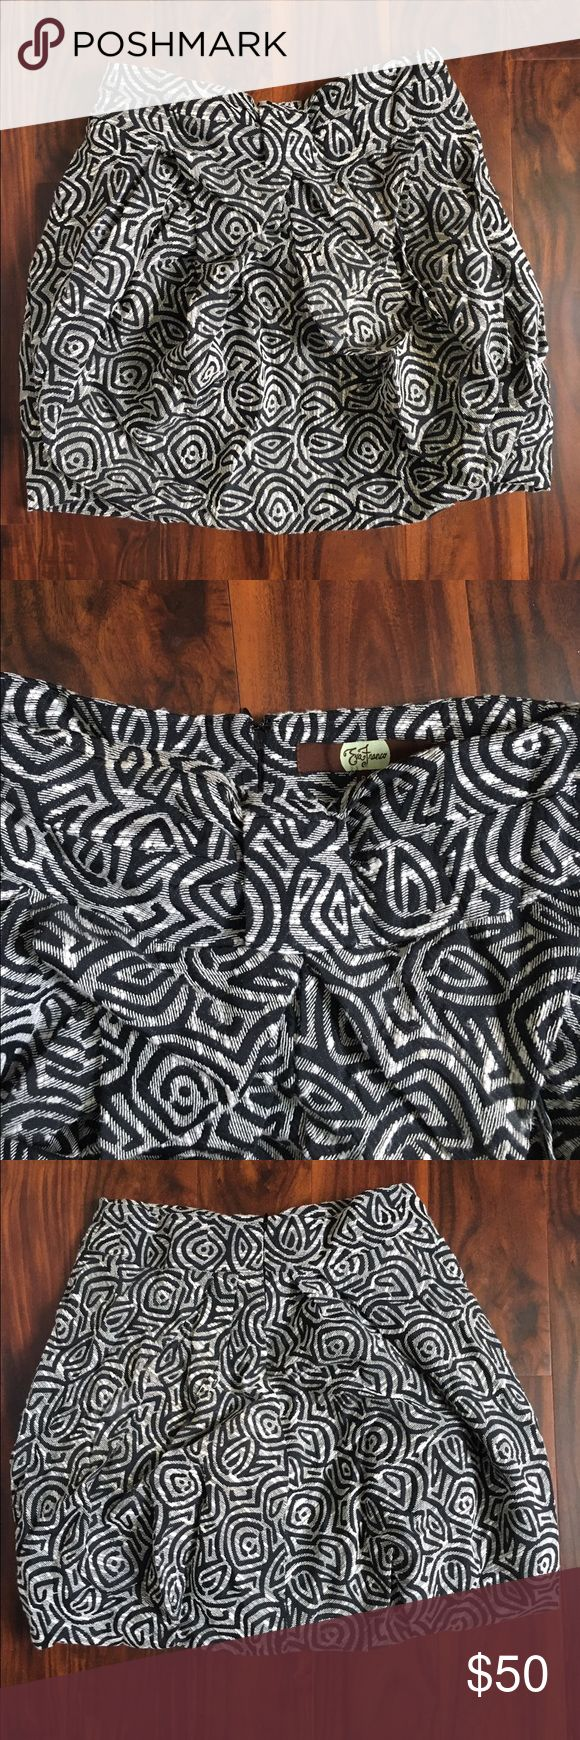 Anthropologie Eva Franco Draped Jungle Skirt Cute skirt with cinched waist and bubble hem. Black and white geometric print and bow at waist. Back zipper. Anthropologie Skirts